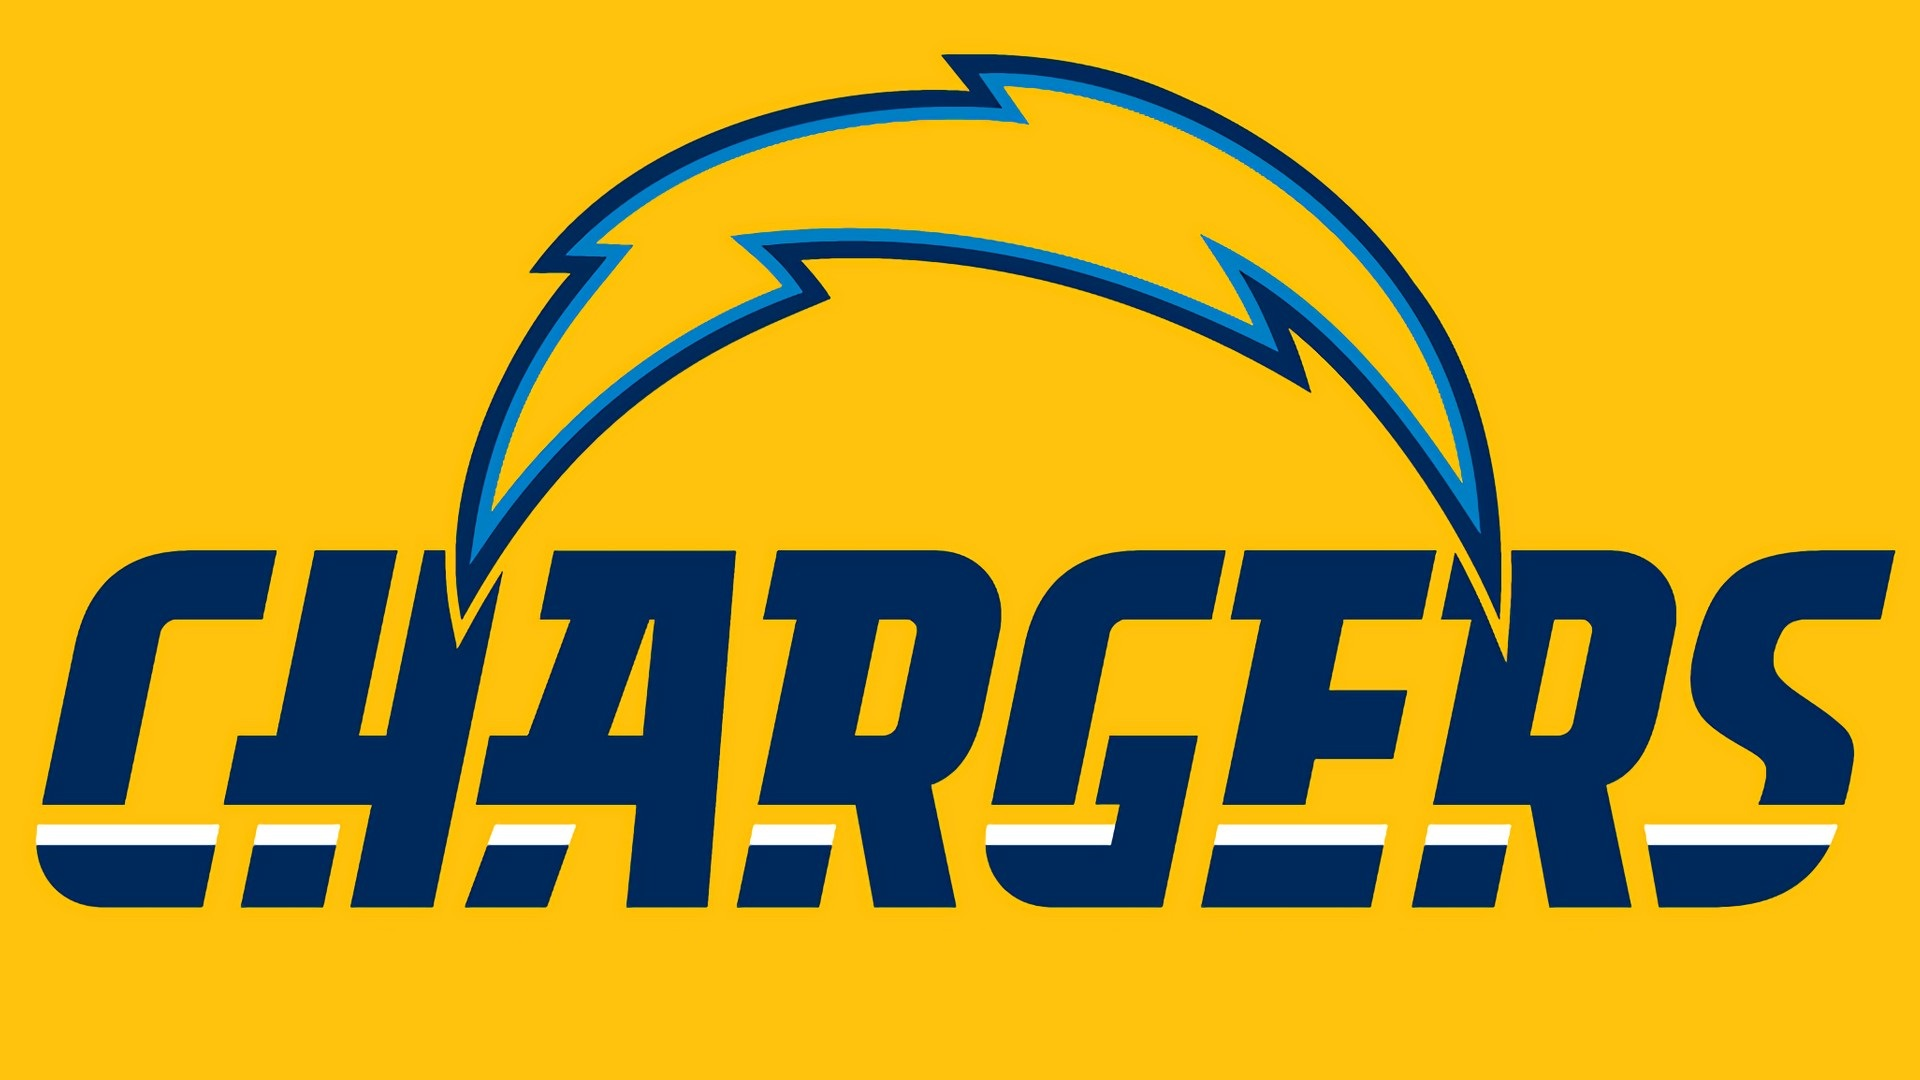 Start Download San Diego Chargers 1615395 Hd Wallpaper